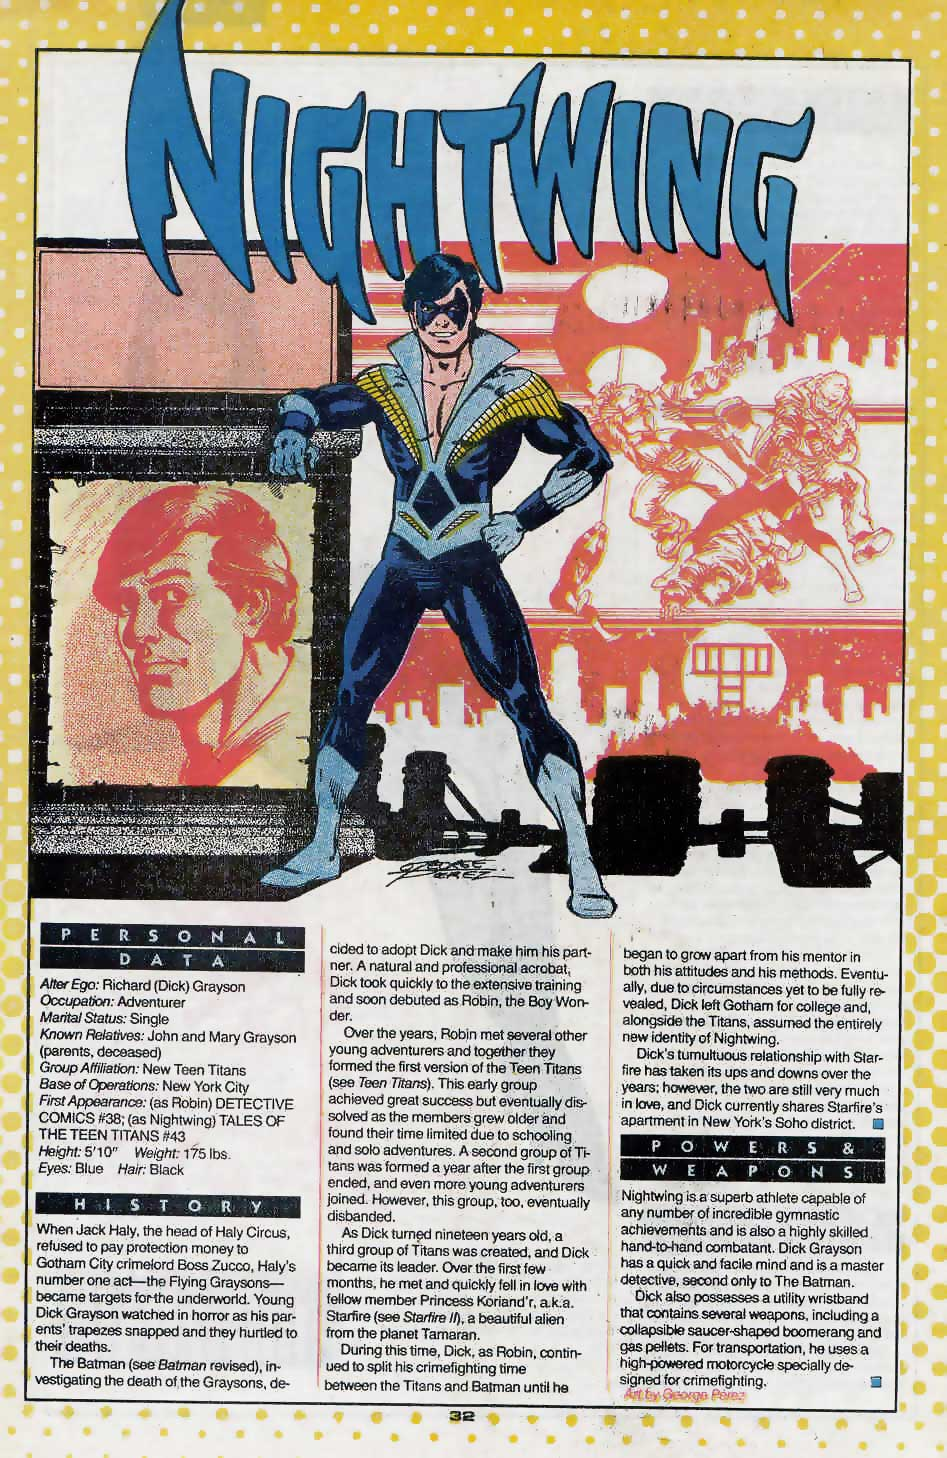 Who's Who Update 88 #2 Nightwing by George Perez